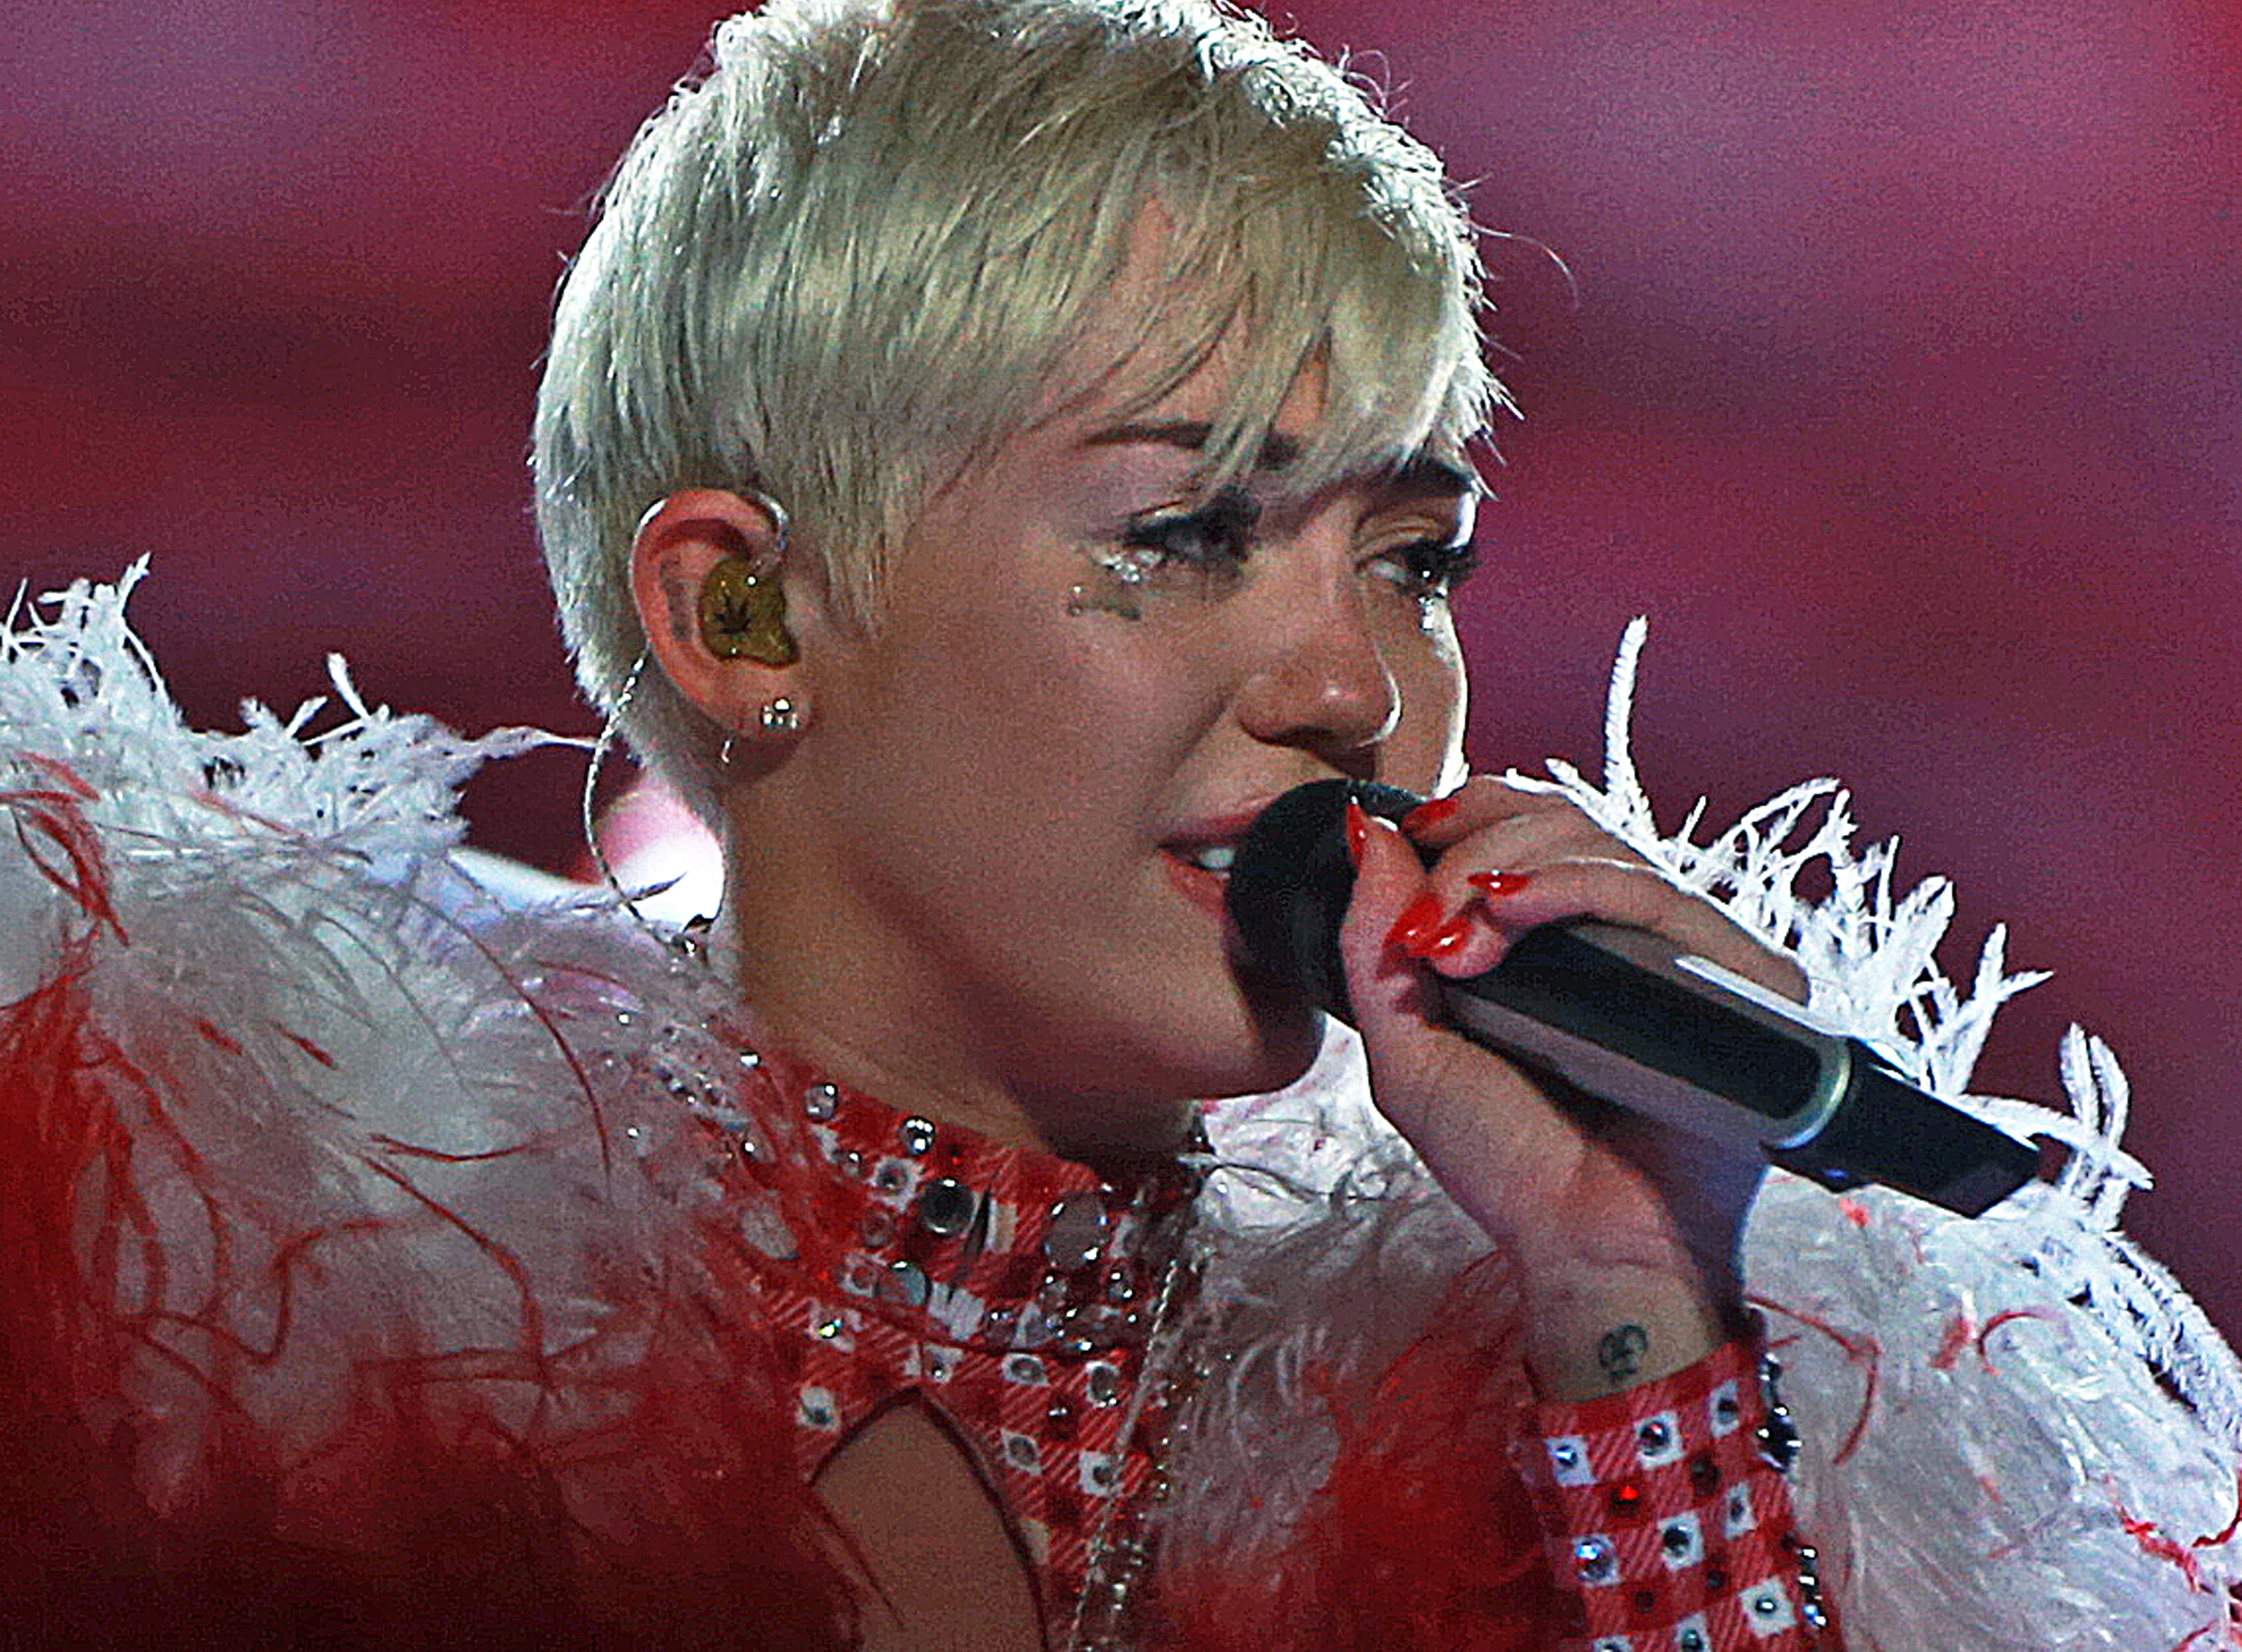 miley-cyrus-crying-on-stage